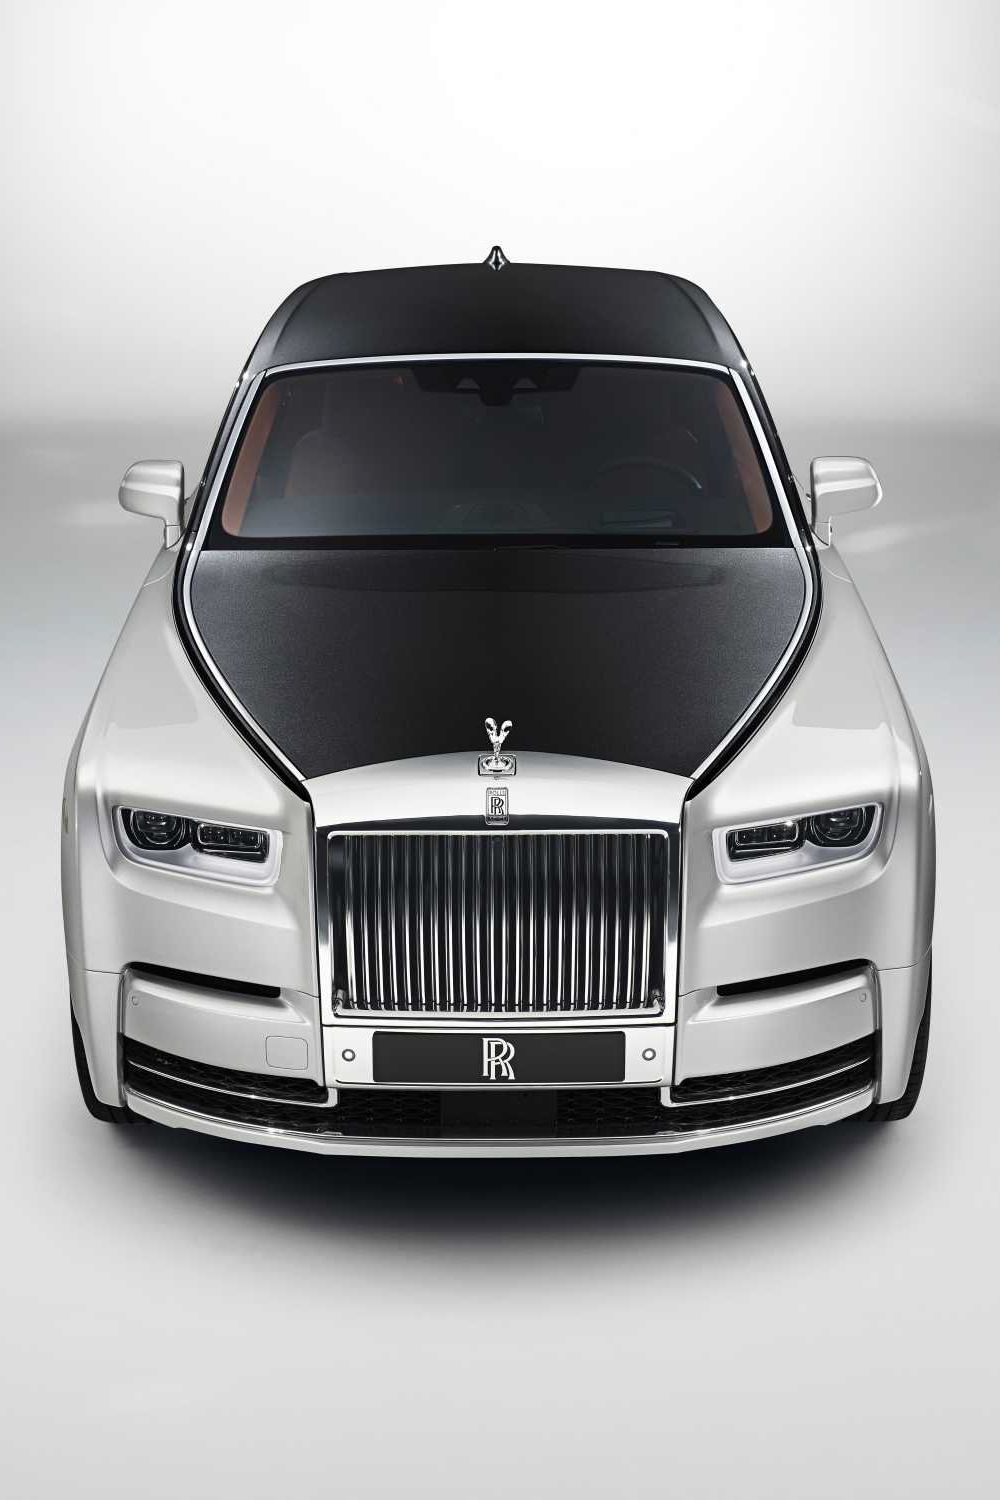 e878b2c17a83 2018 Rolls-Royce Phantom - The MAN